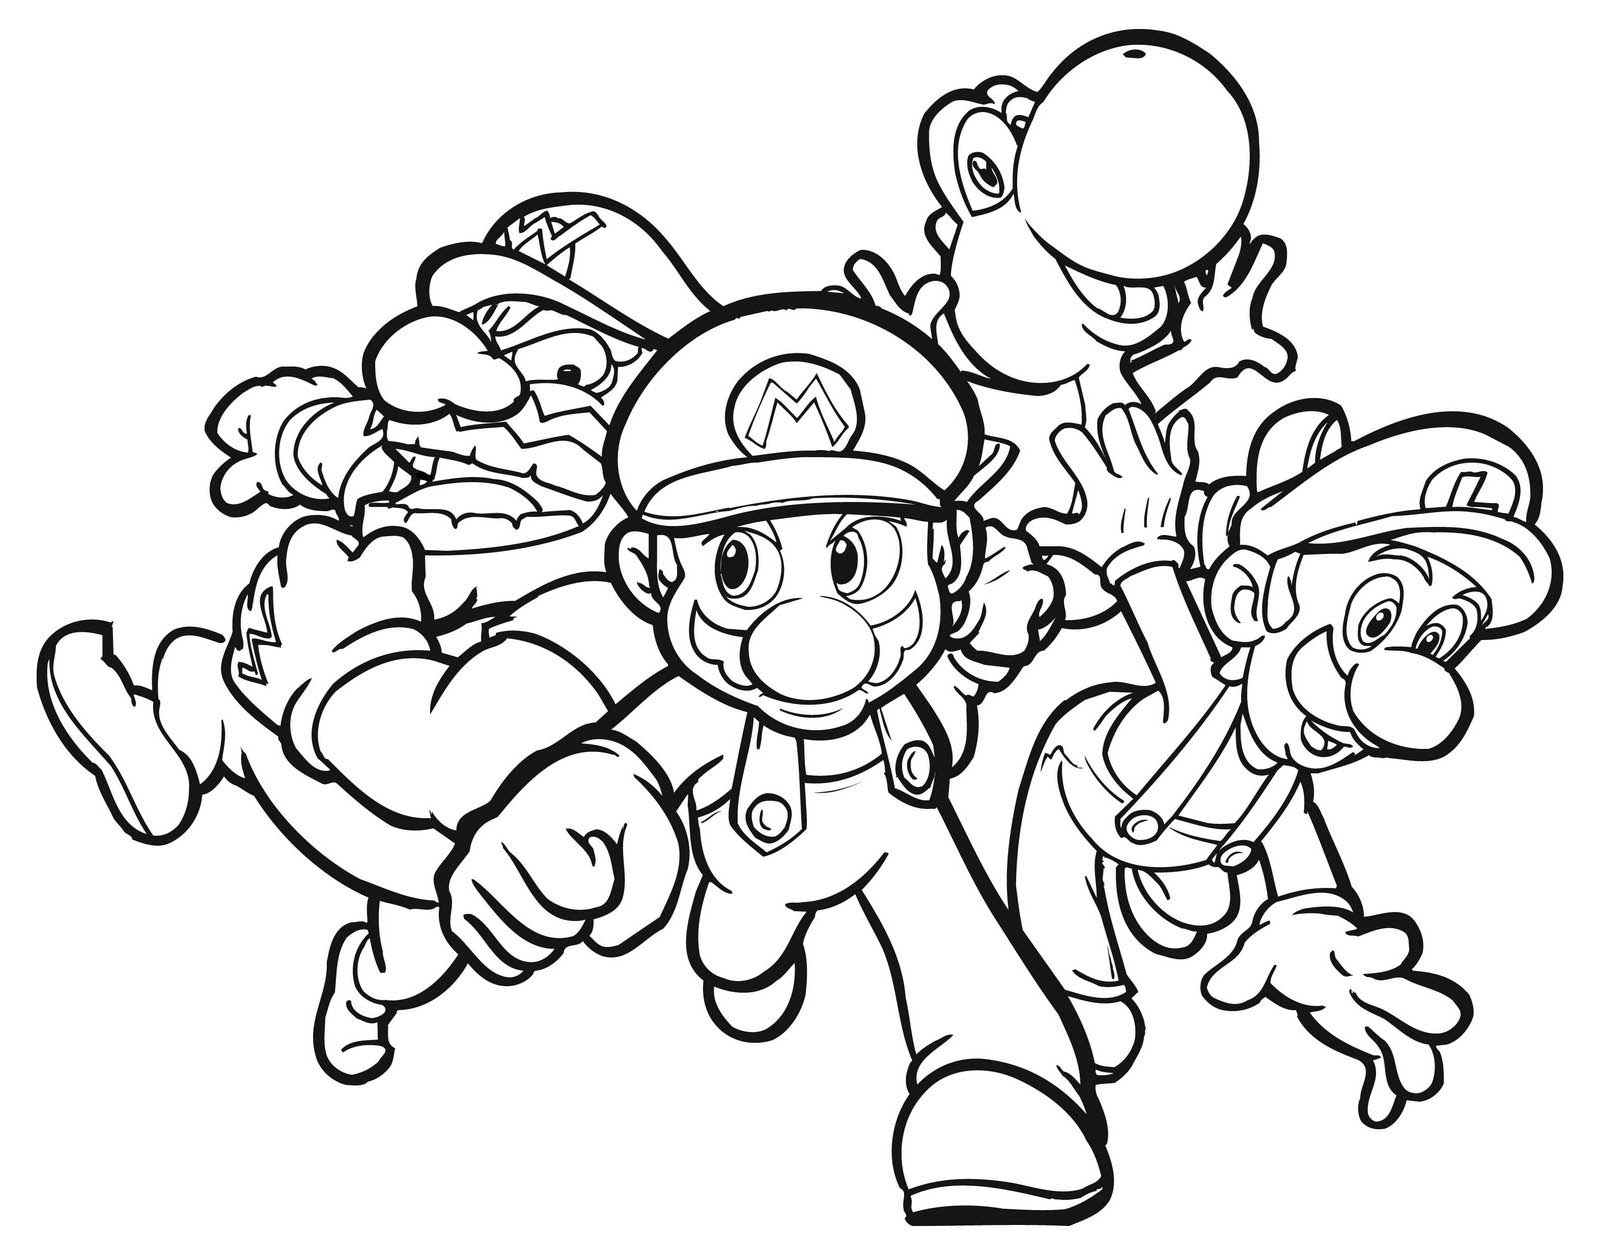 coloring mario coloring pages mario coloring pages free and printable coloring mario